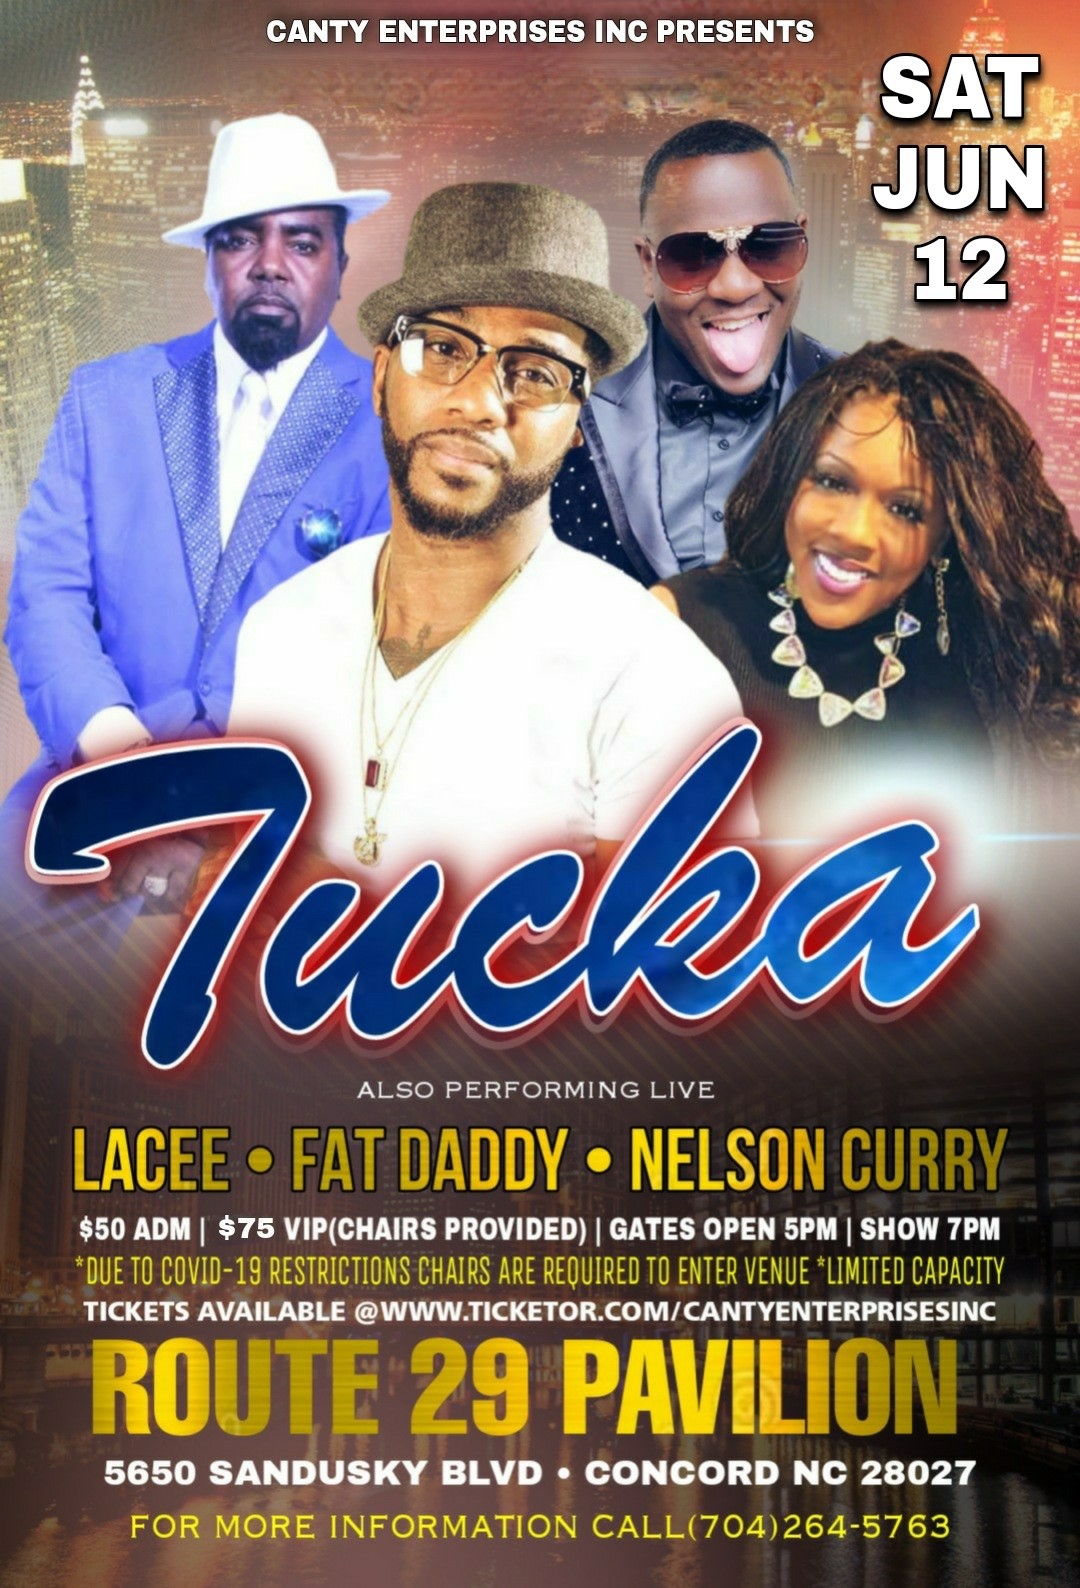 Tucka N Friends Tucka, Lacee, Nelson Curry, FatDaddy on Jun 12, 19:00@Route 29 Pavilion - Buy tickets and Get information on Canty Enterprises Inc